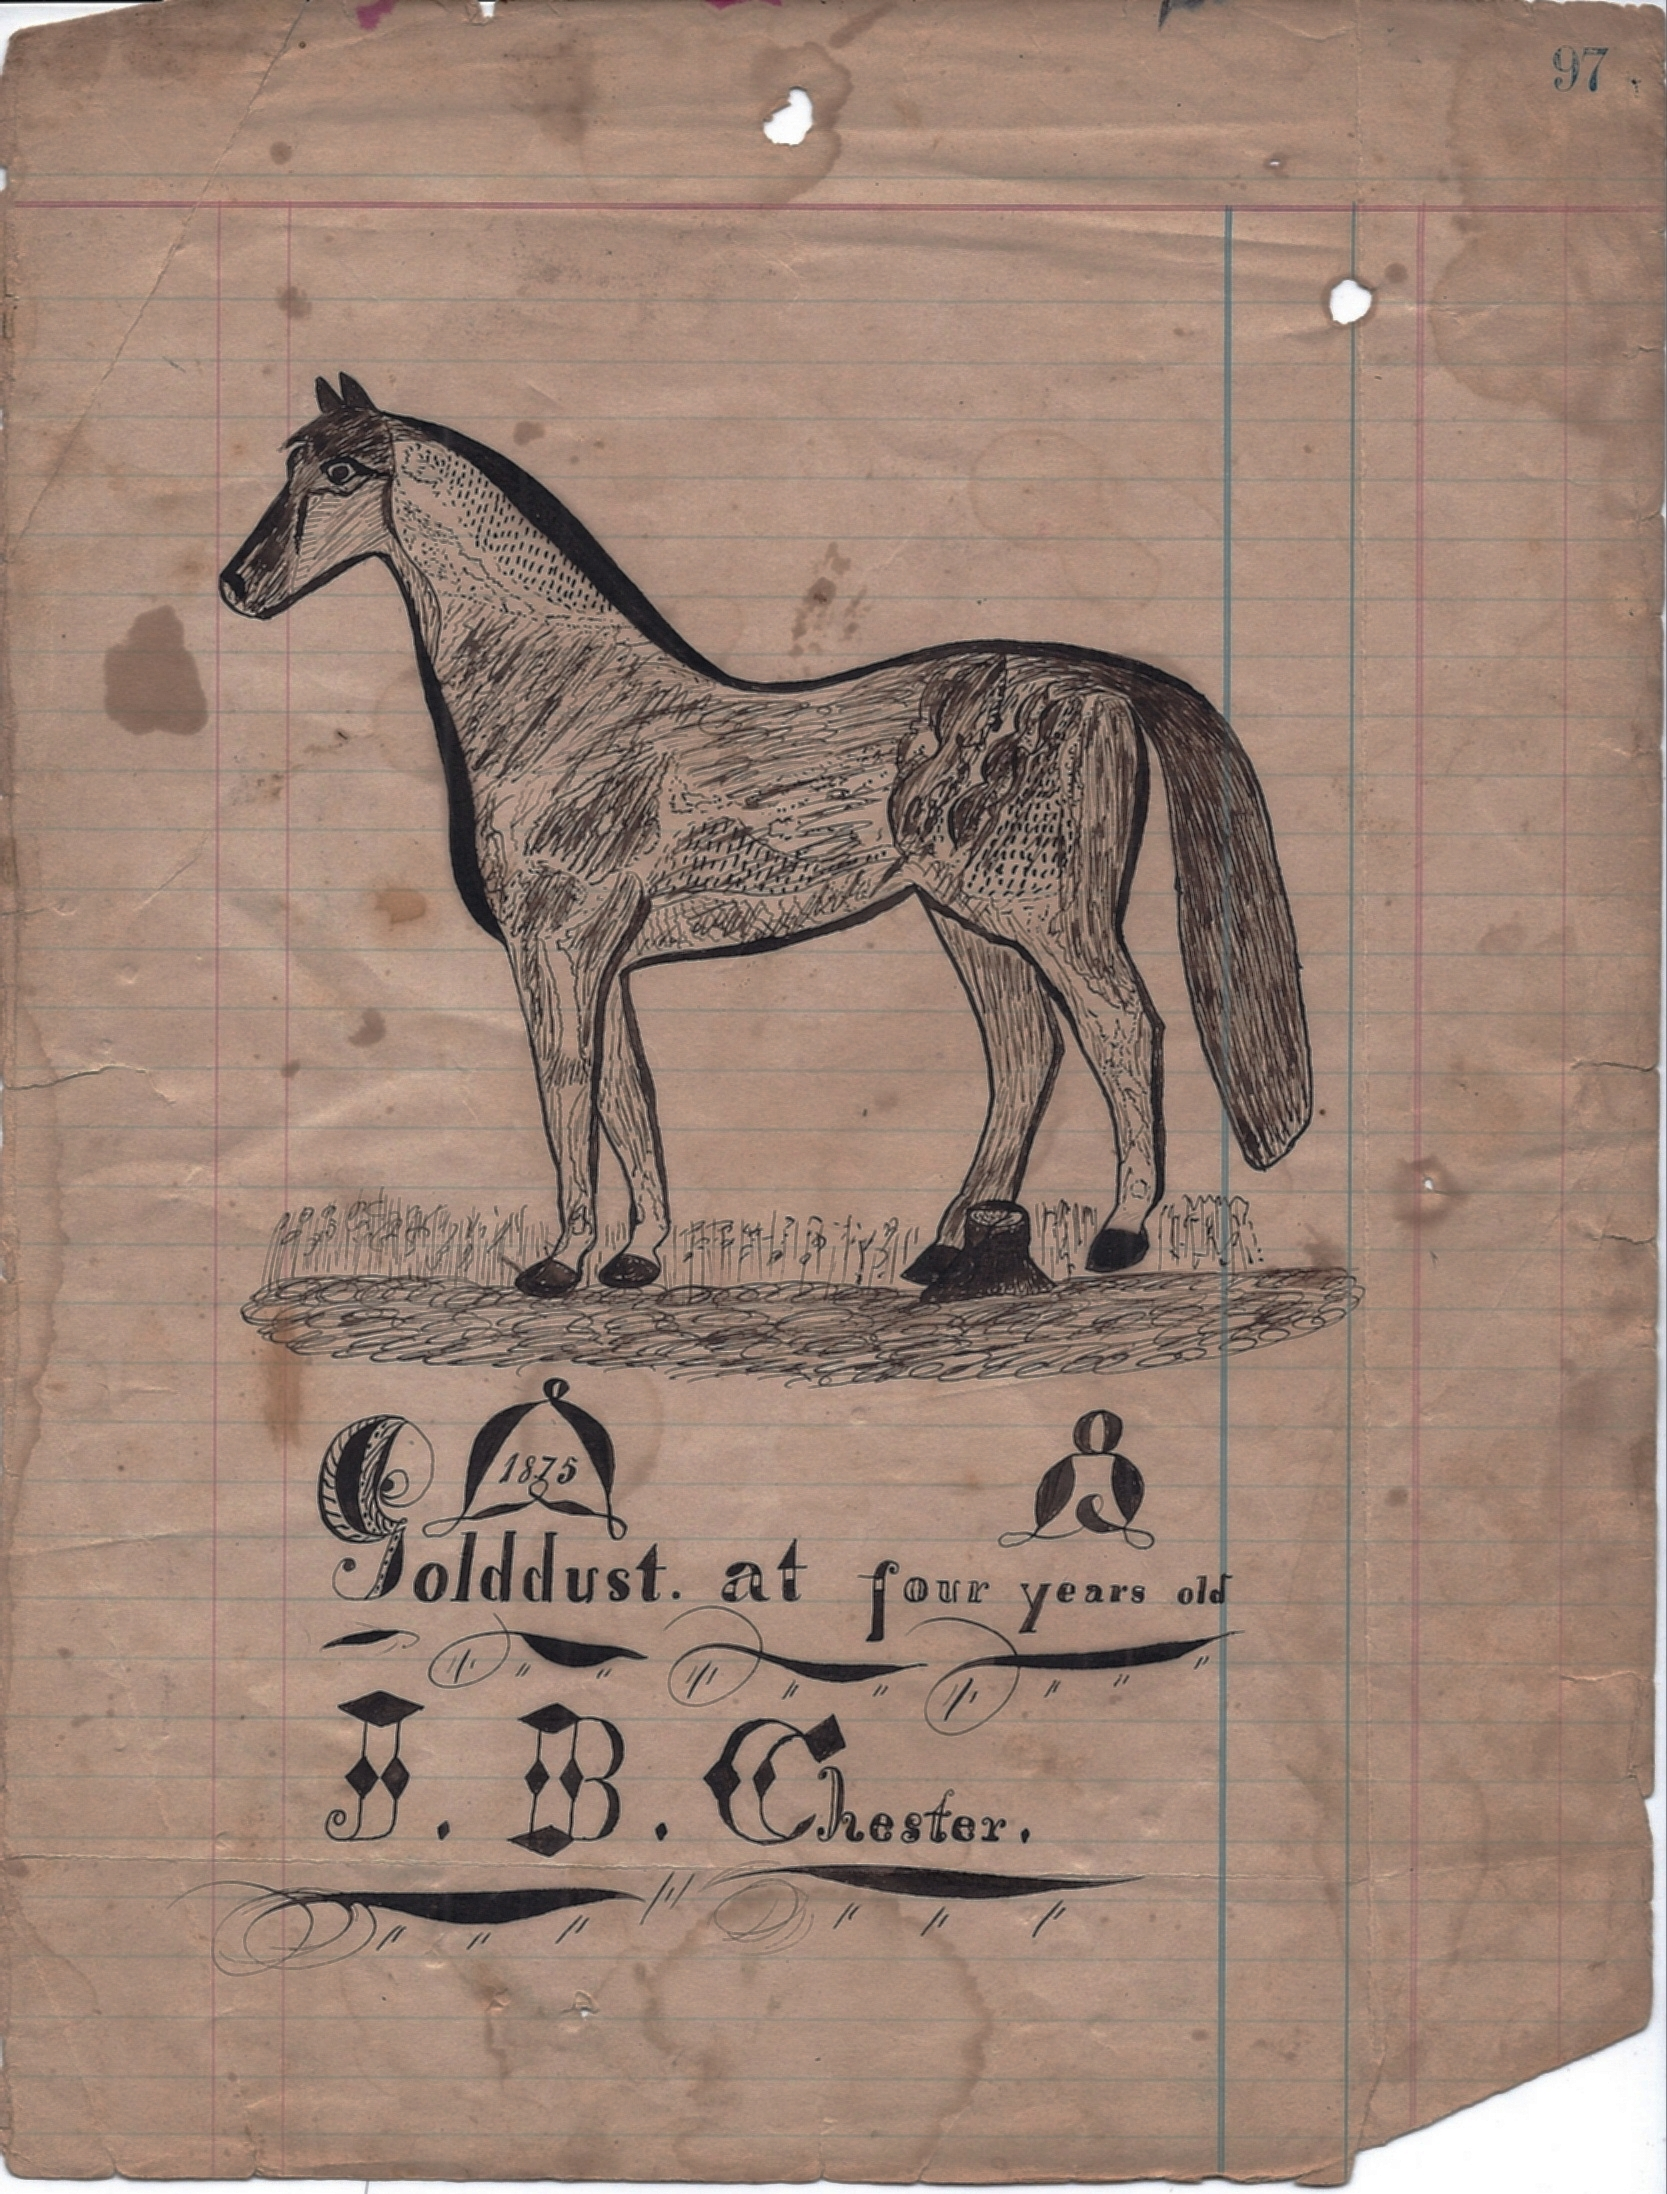 Josiah B. Chester, artist,  Golddust at four-years old . Harrison Township, 1875]. Chester was a tenant farmer and basketmaker. His journal is illustrated with creative and whimsical drawings that establish him as one of Harrison Township's important folk artists. [HTHS: Helen Grodotzke Collection]